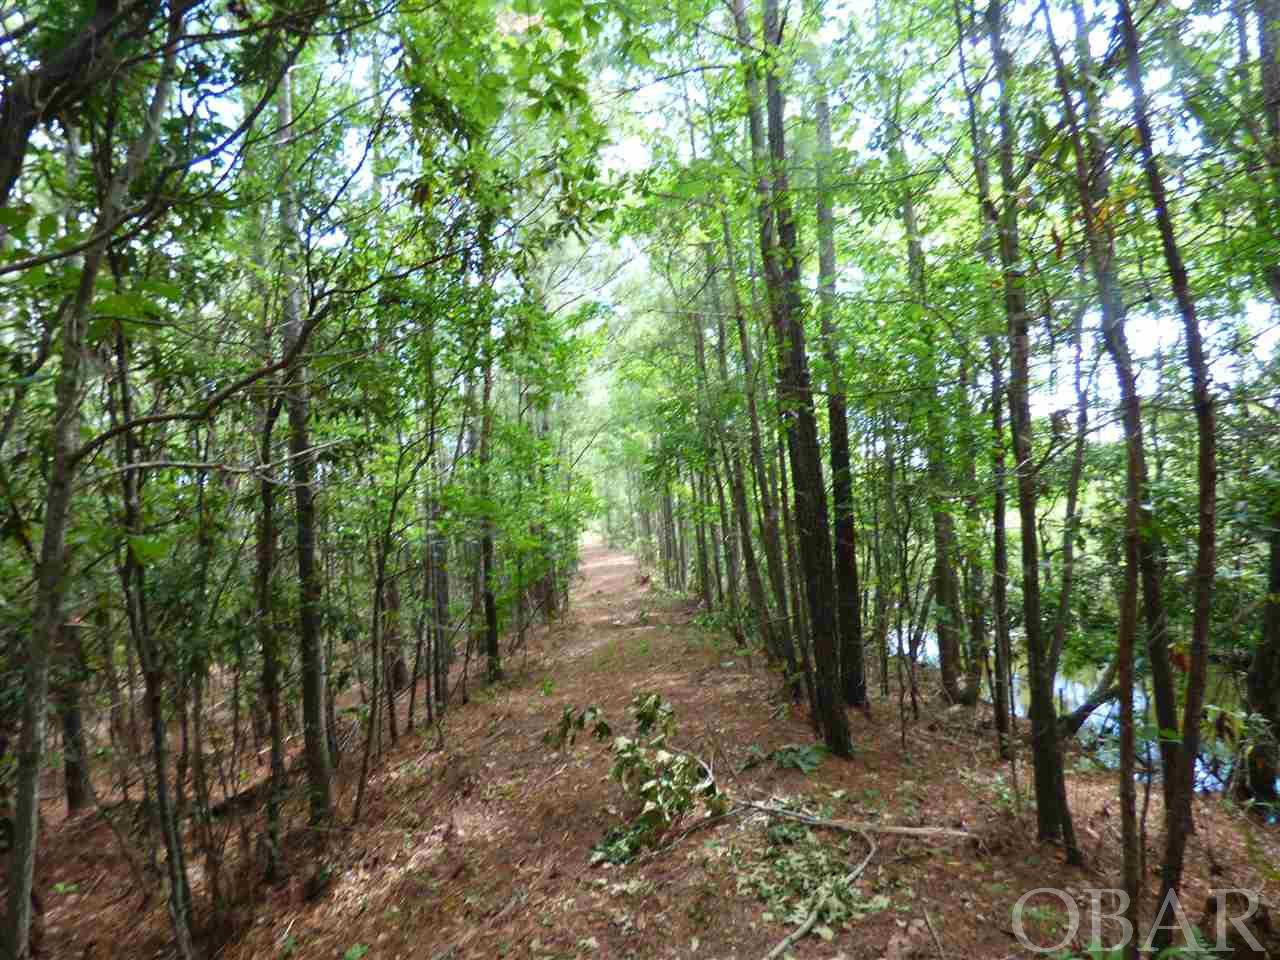 0 Jarvisburg Road, Jarvisburg, NC 27947, ,Lots/land,For sale,Jarvisburg Road,109550